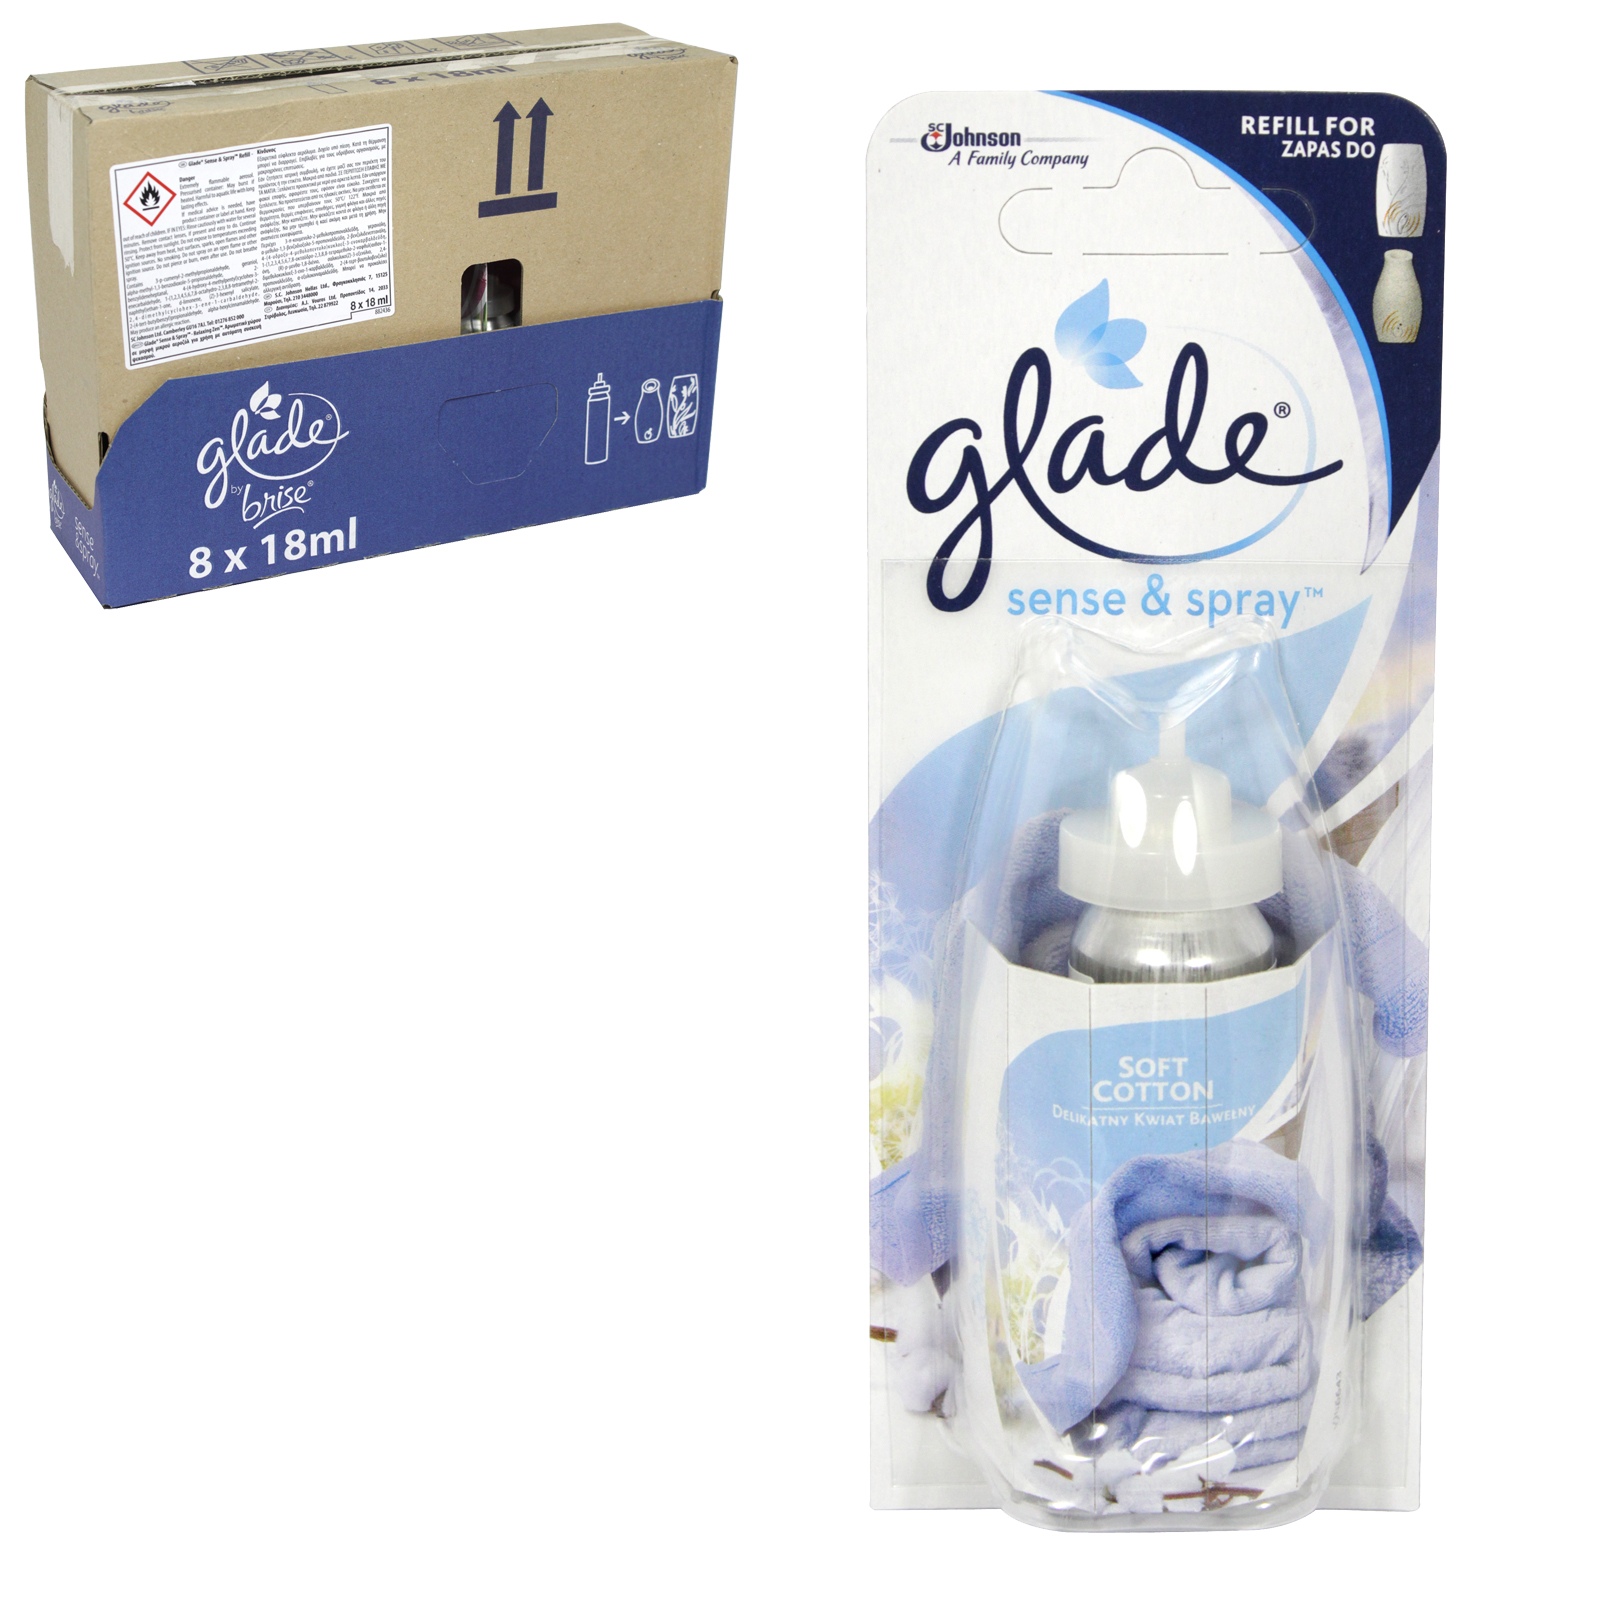 GLADE SENSE+SPRAY 18ML REFILL SOFT COTTON X8